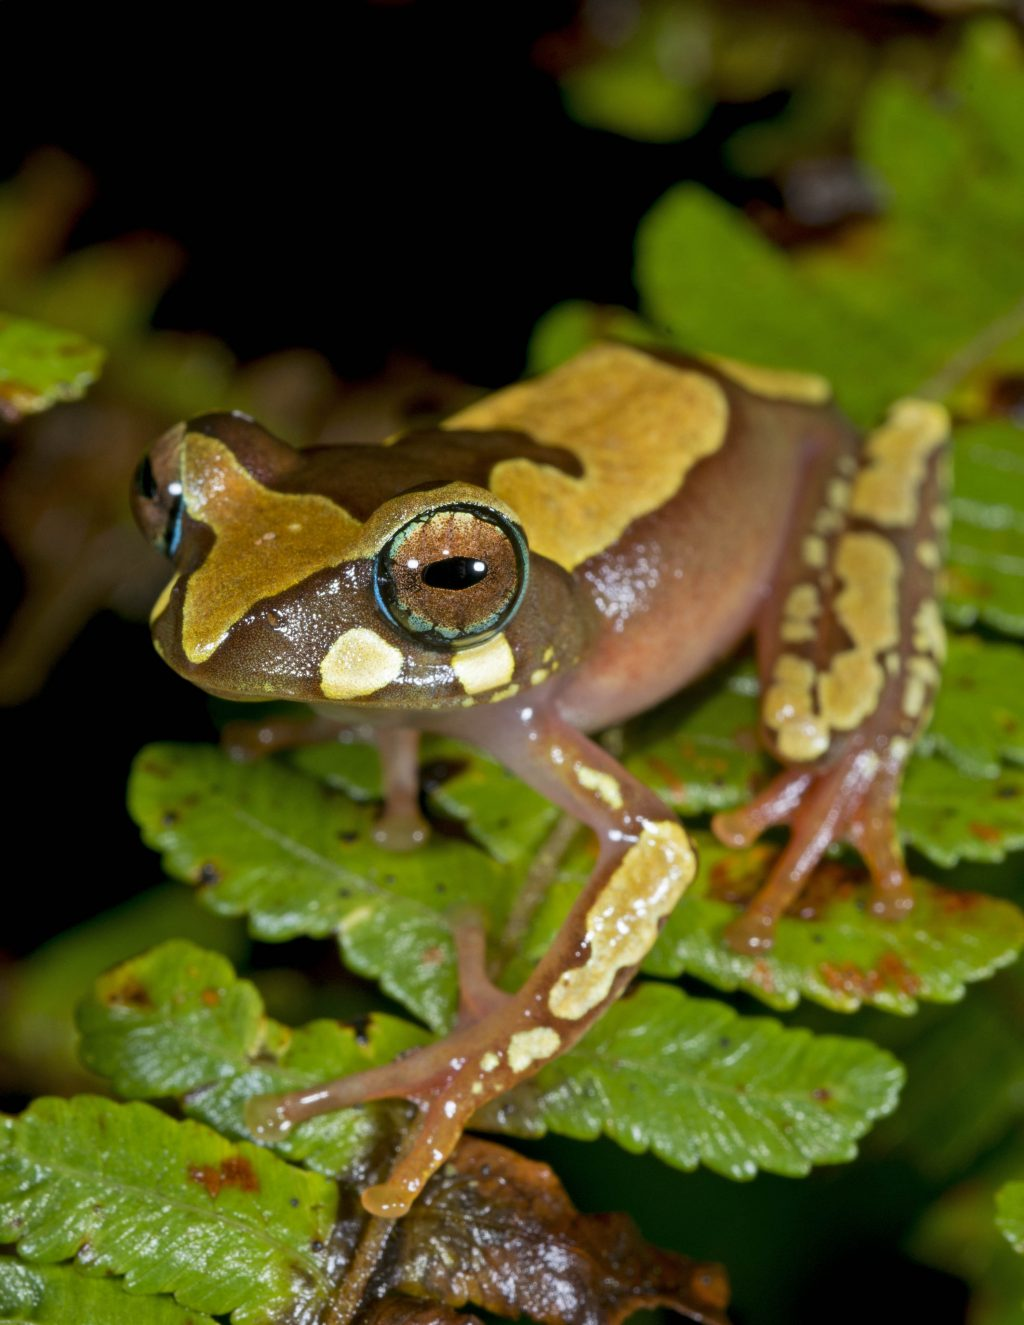 brown and tan spotted tree frog